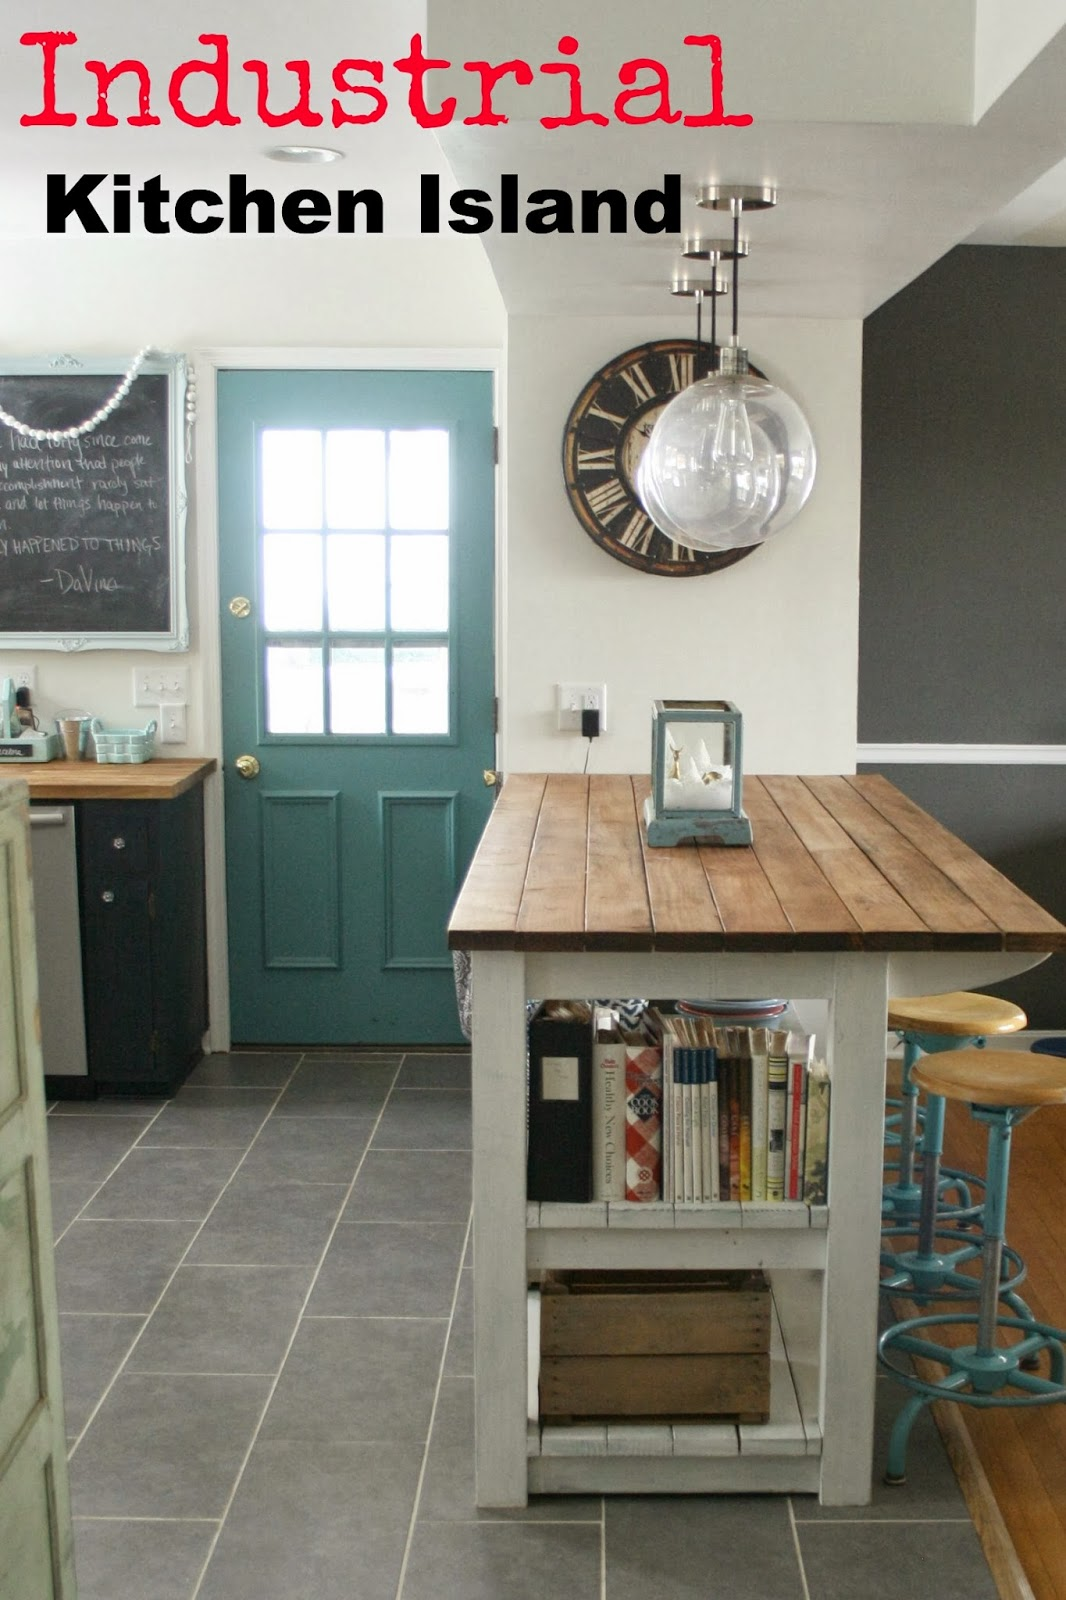 industrial kitchen island cabinets near me my look and that time i messed